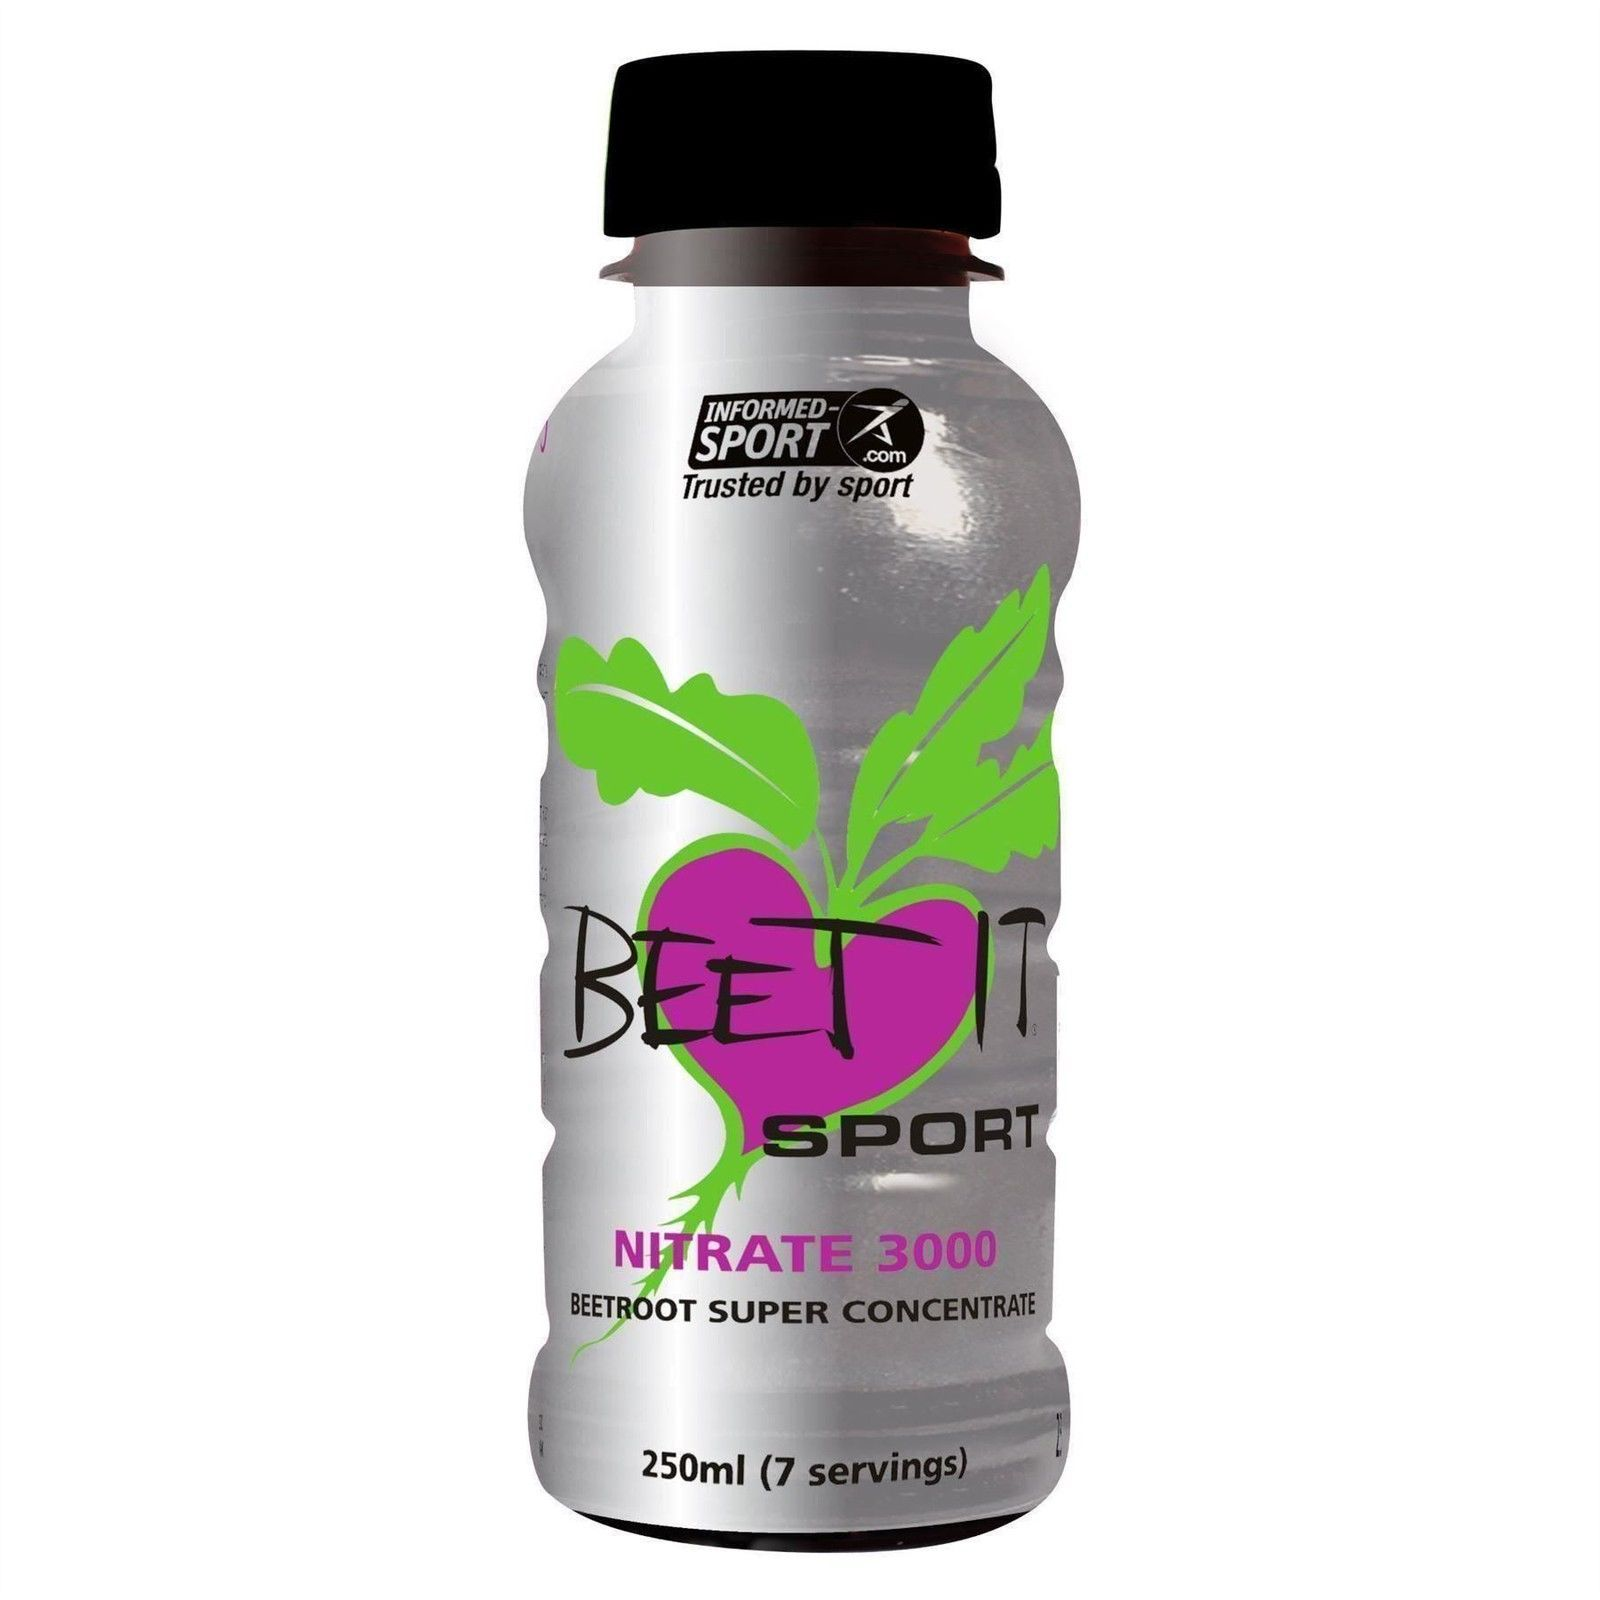 BeetIt Nitrate 3000 Concentrate Beetroot Juice 250Ml